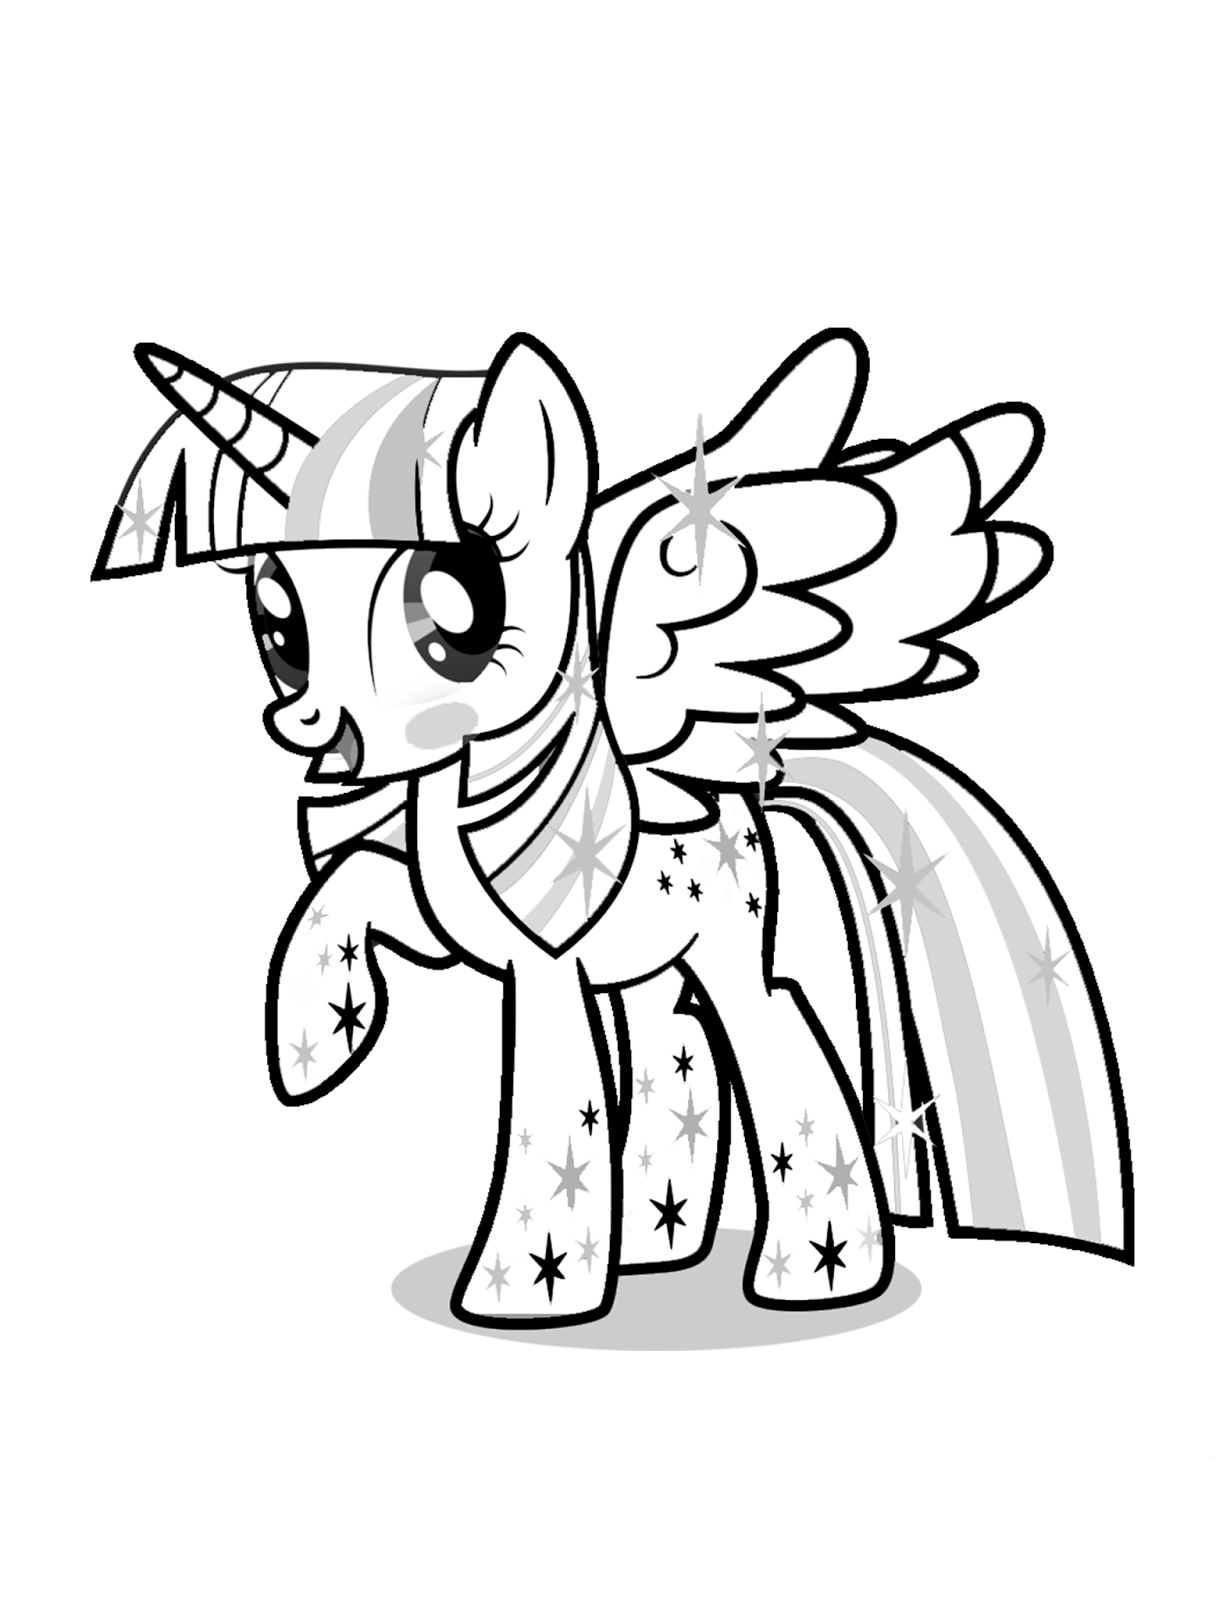 twilight sparkle coloring pages to print princess twilight sparkle coloring page free printable twilight coloring to pages print sparkle